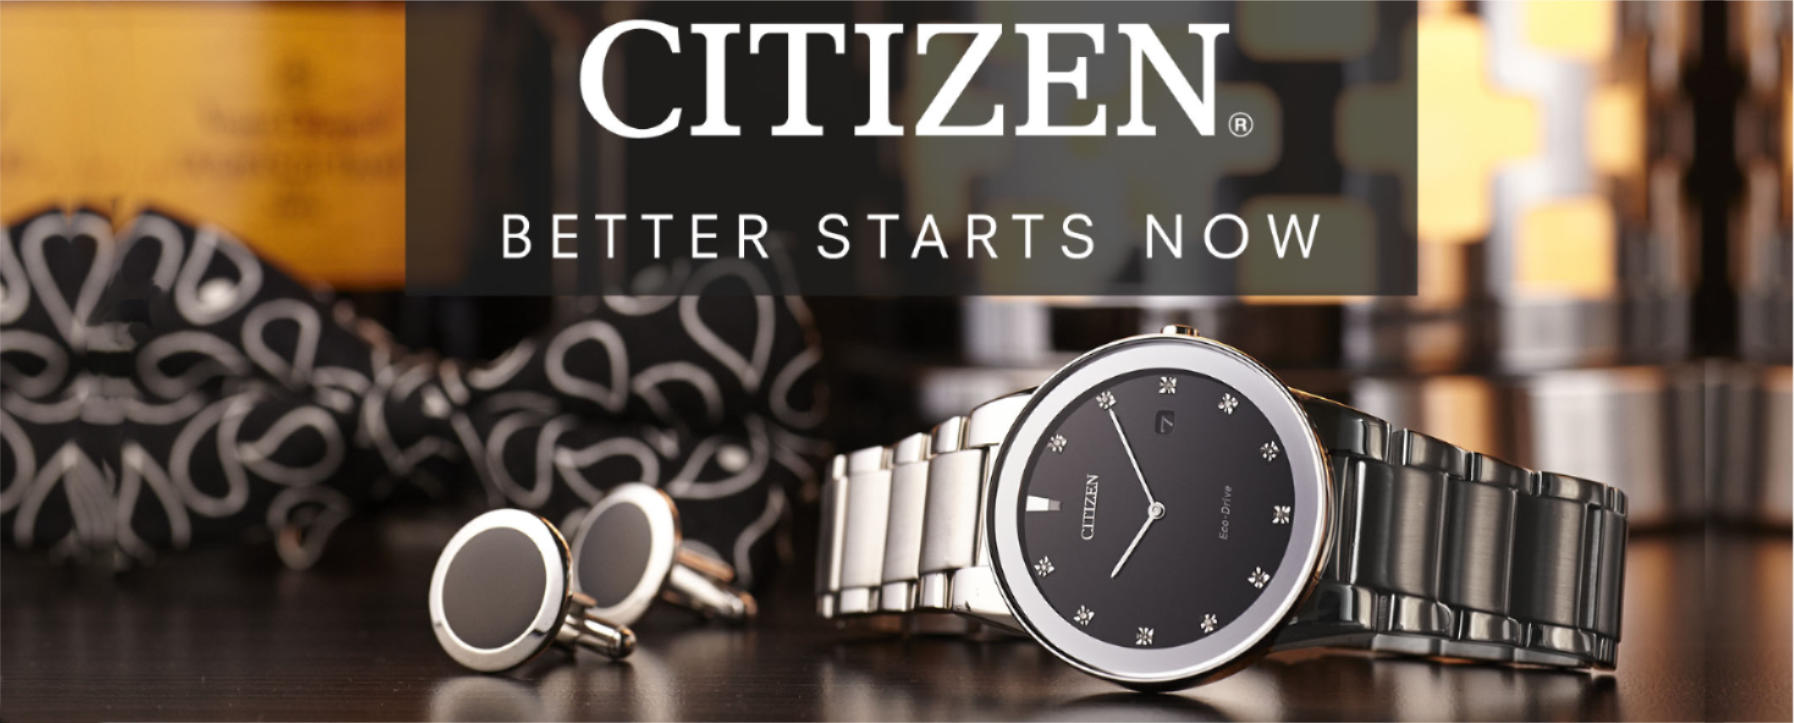 Citizen Watch Slider